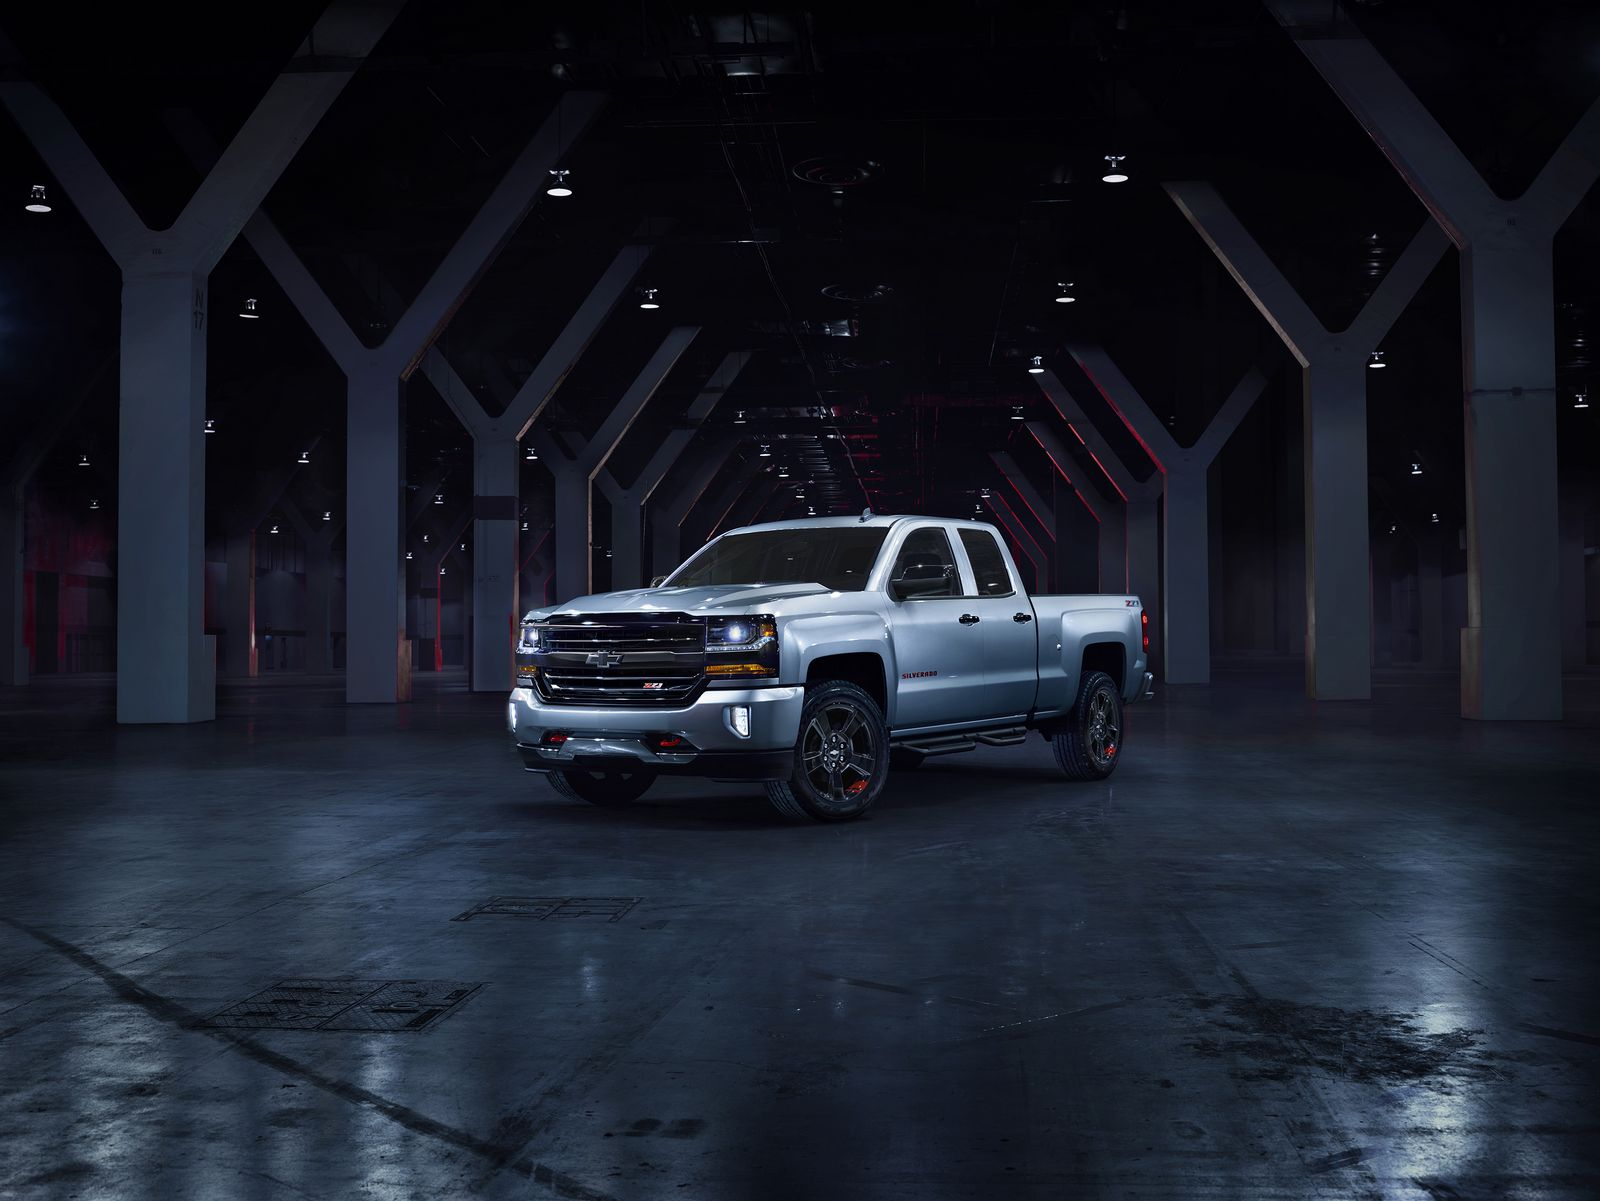 The Silverado Redline edition features red tow hooks, black mirror caps and a spray-in bedliner, showcasing the rugged utility Chevrolet truck buyers expect. Now available for purchase, Redline is offered on Silverado Double Cab LT Z71 and Crew Cab LTZ Z71.  All Redline vehicles will be available for purchase by the end of 2017 calendar year.